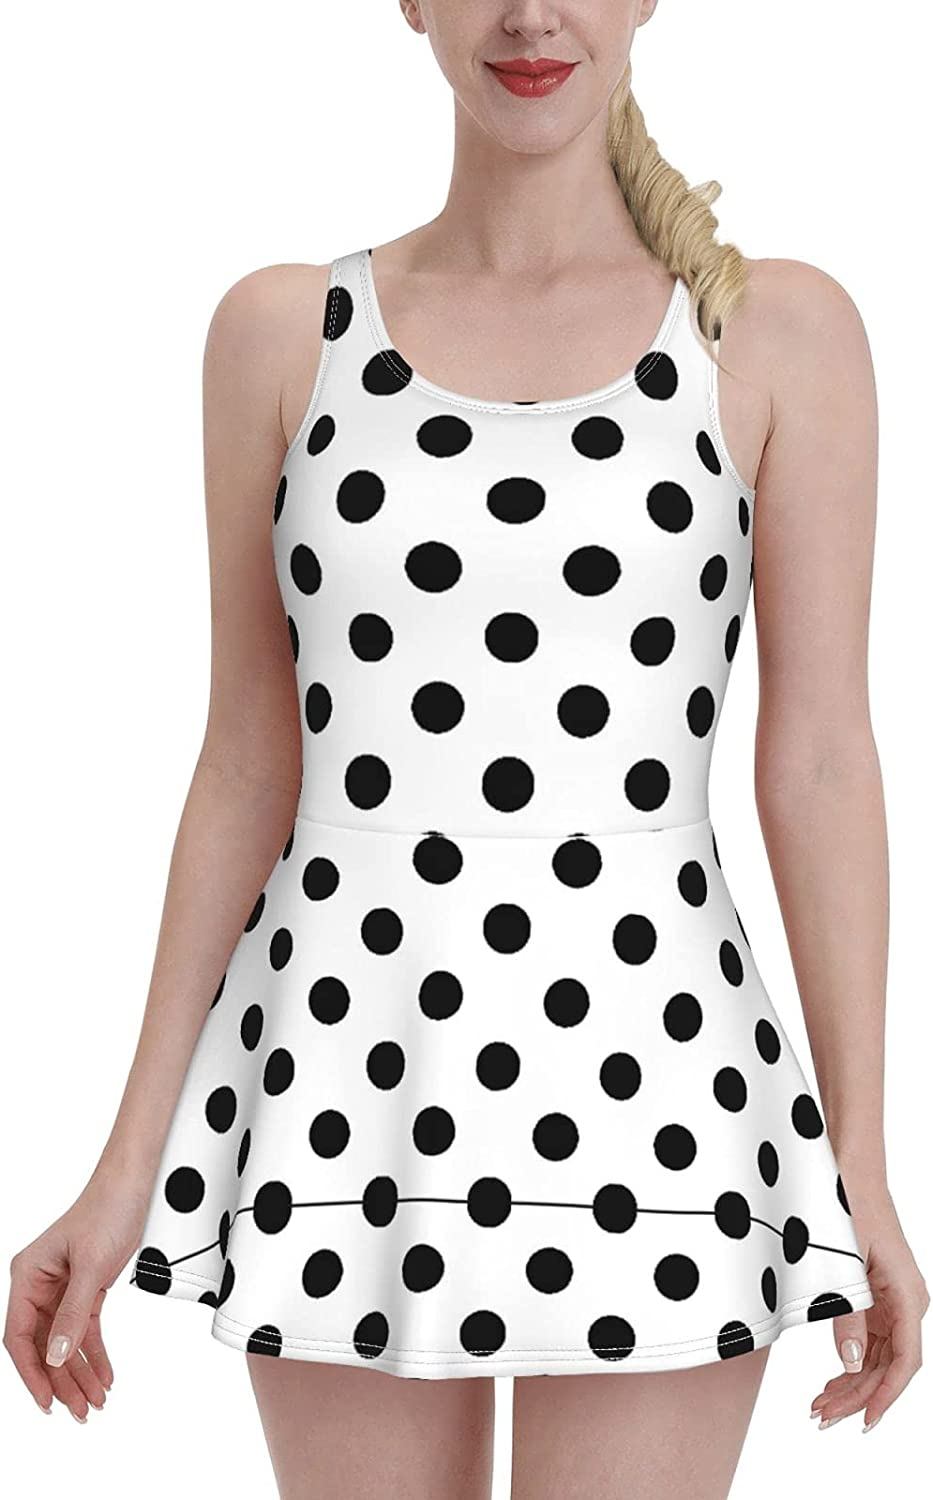 Black Dots On White Background Swimdress Swimsuits for Women Tummy Control 1 One Pi